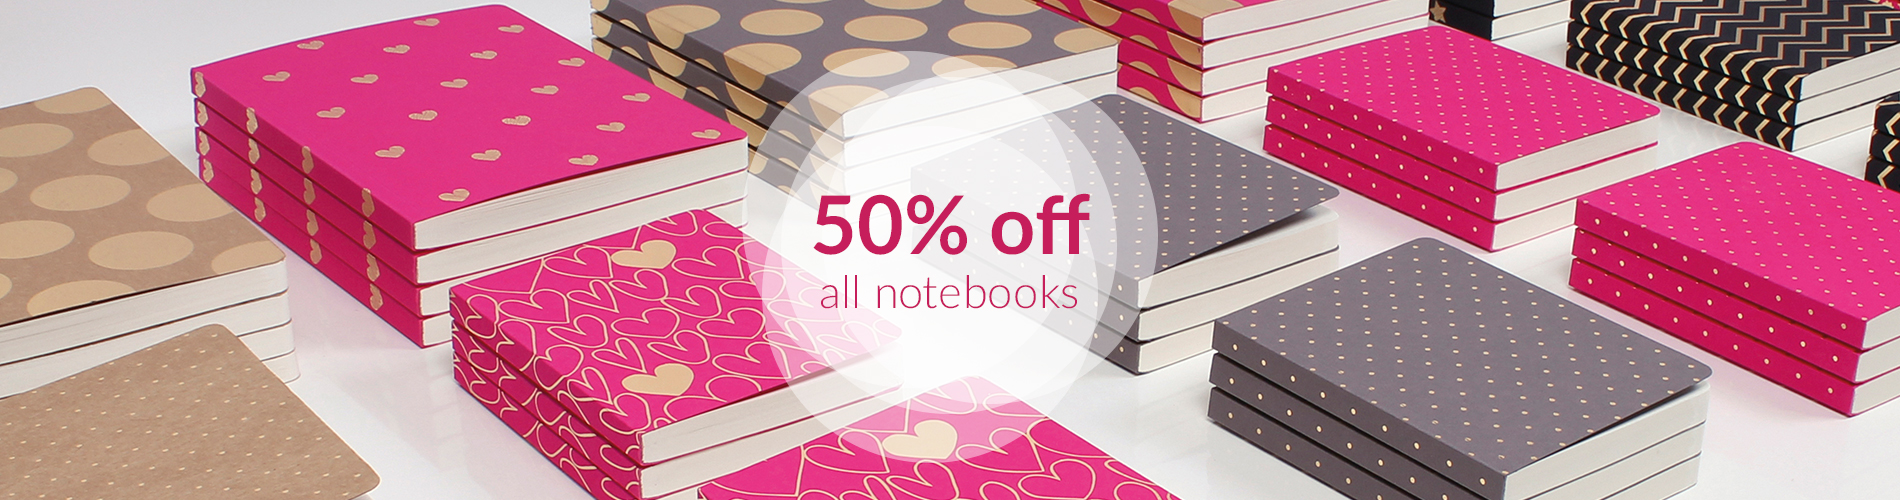 50 off notebooks